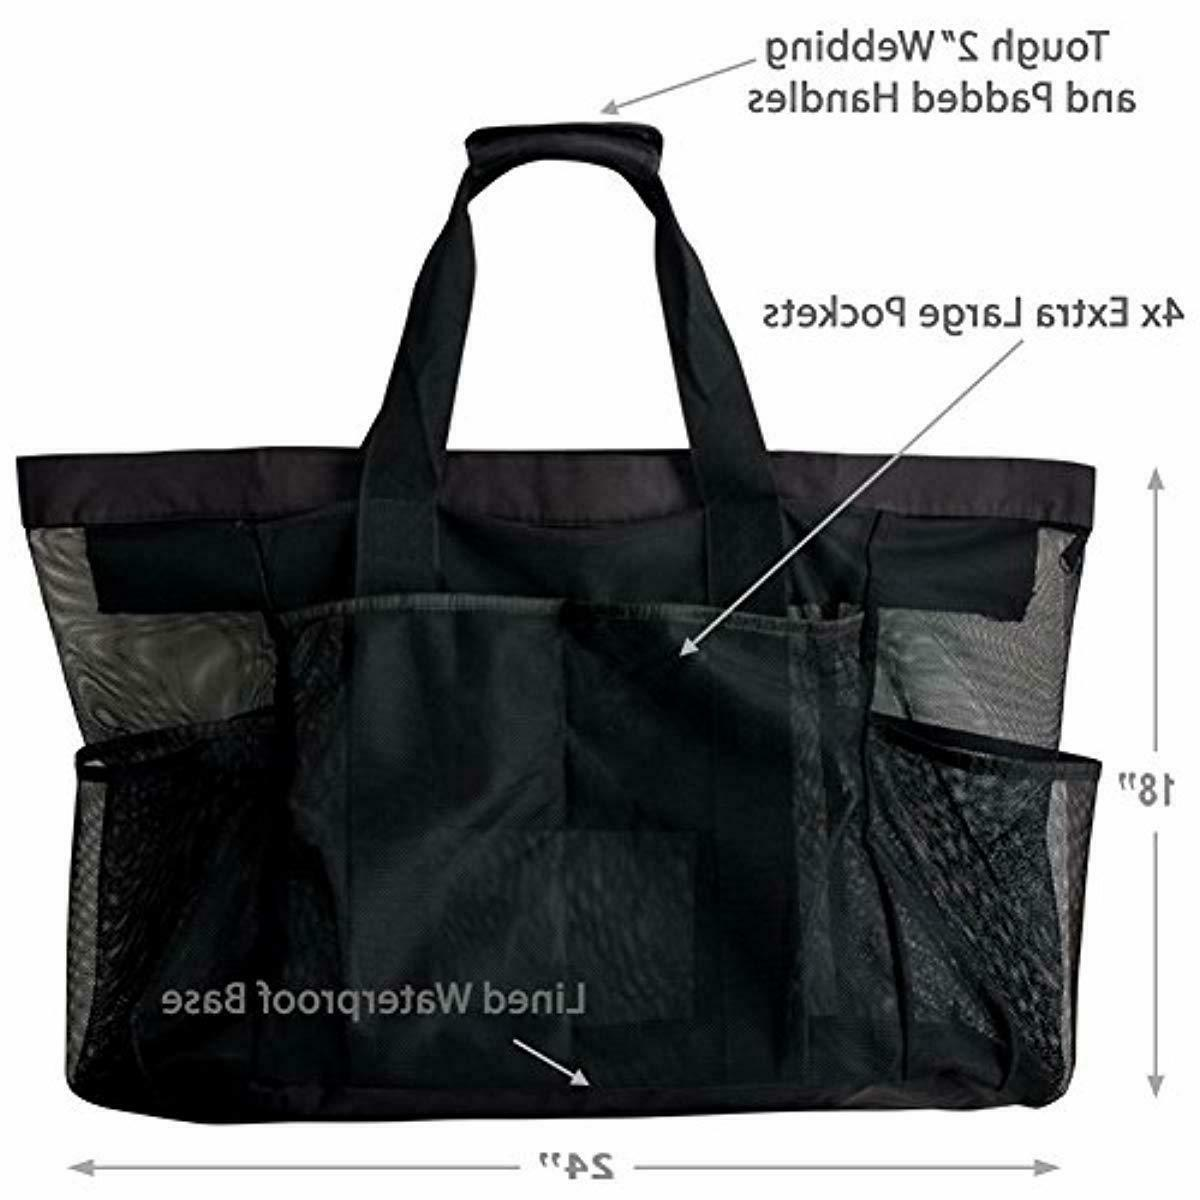 Extra XXL Mesh Tote Bag with Pockets Zipper